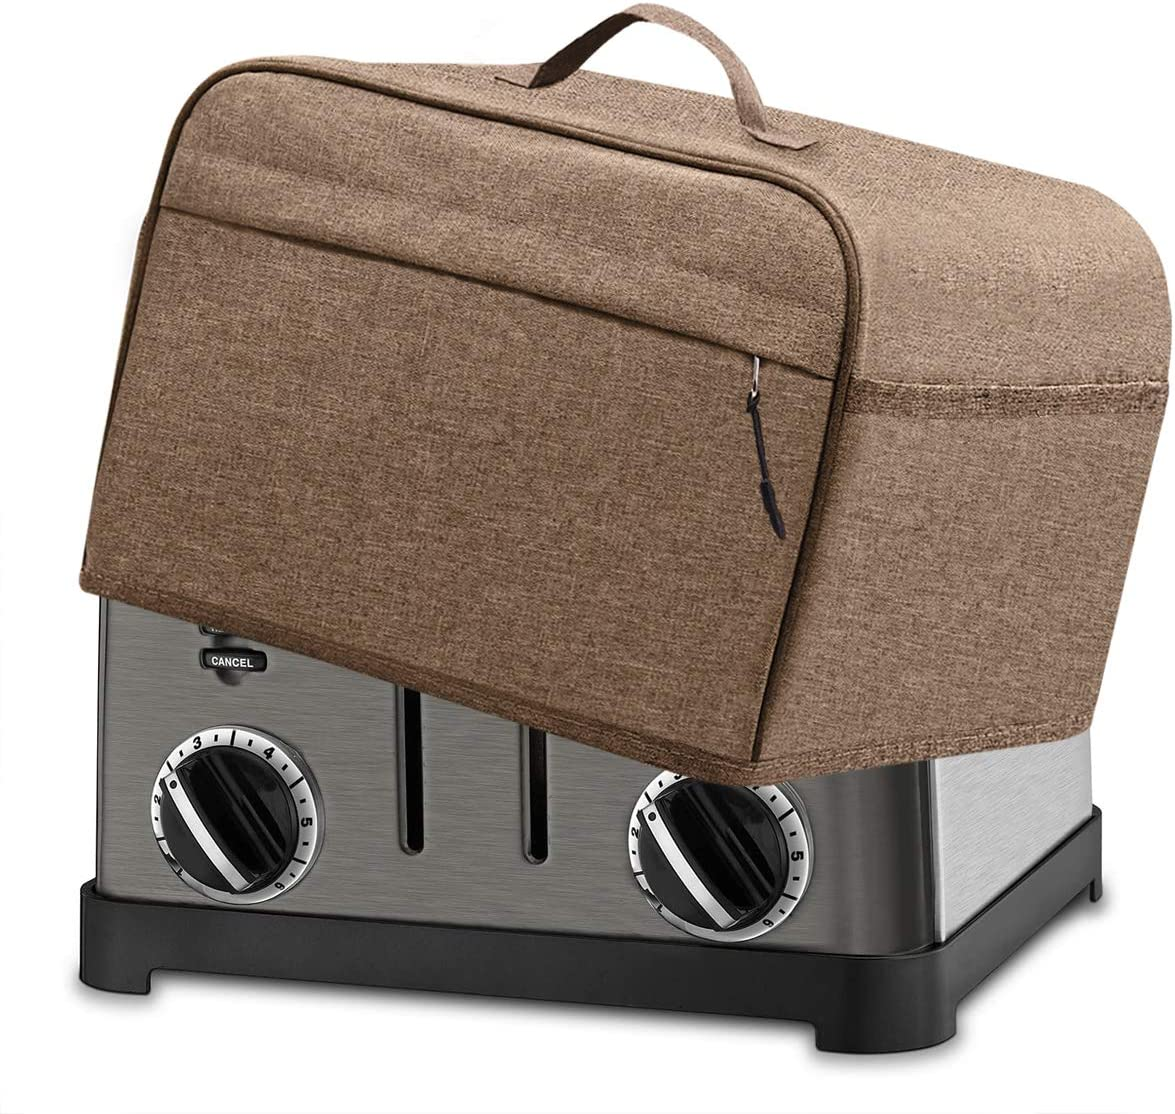 INMUA 4 Slice Toaster Cover with 2 Pockets, Toaster Appliance Cover with Top handle, Dust and Fingerprint Protection, Machine Washable (Brown)